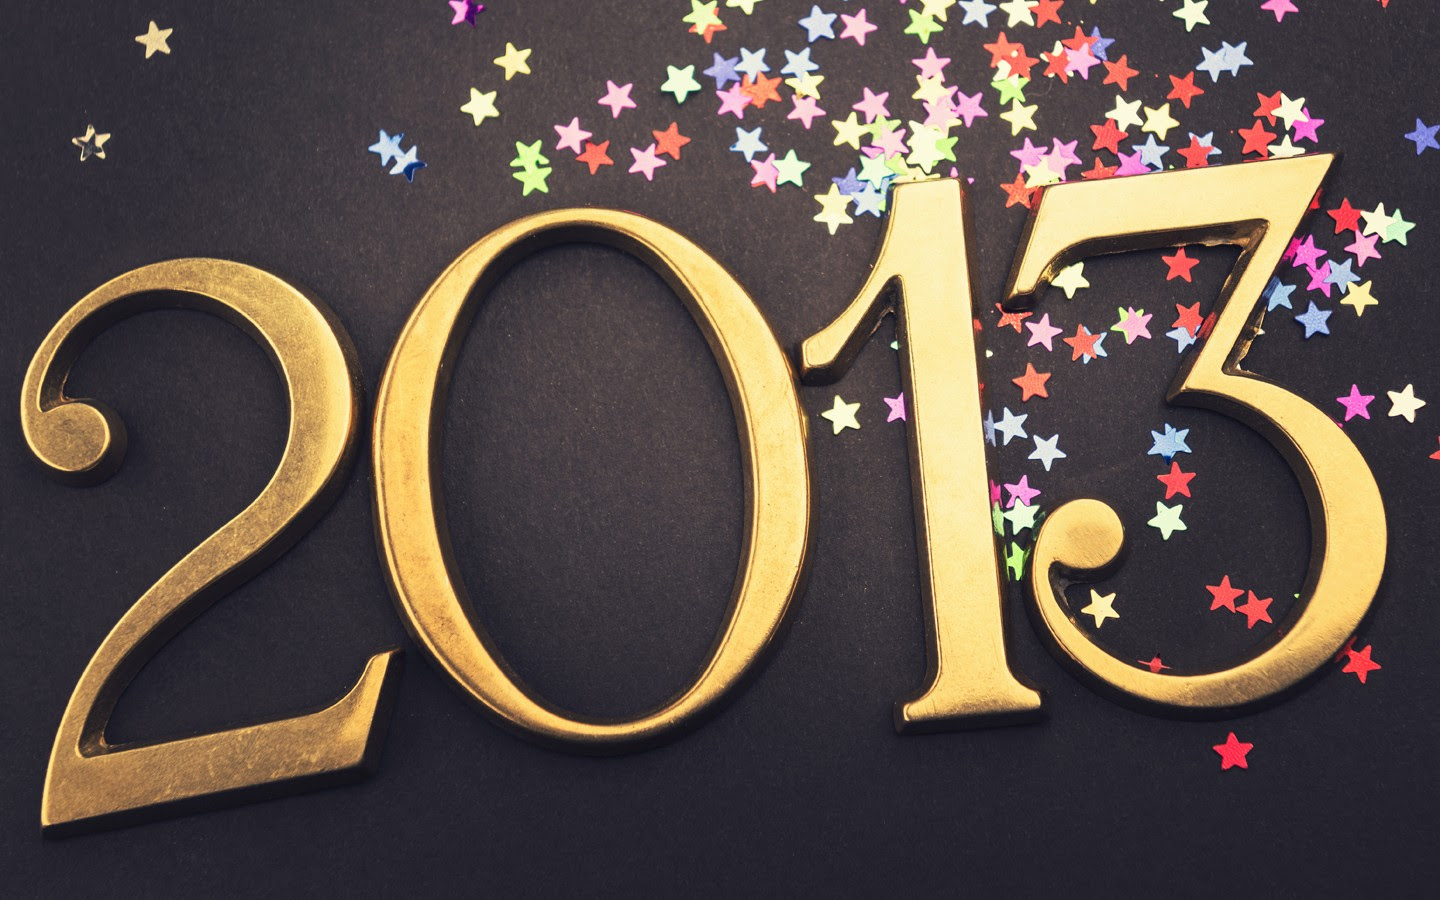 Gold 2013 New year text on christmas decoration 32279 - Others